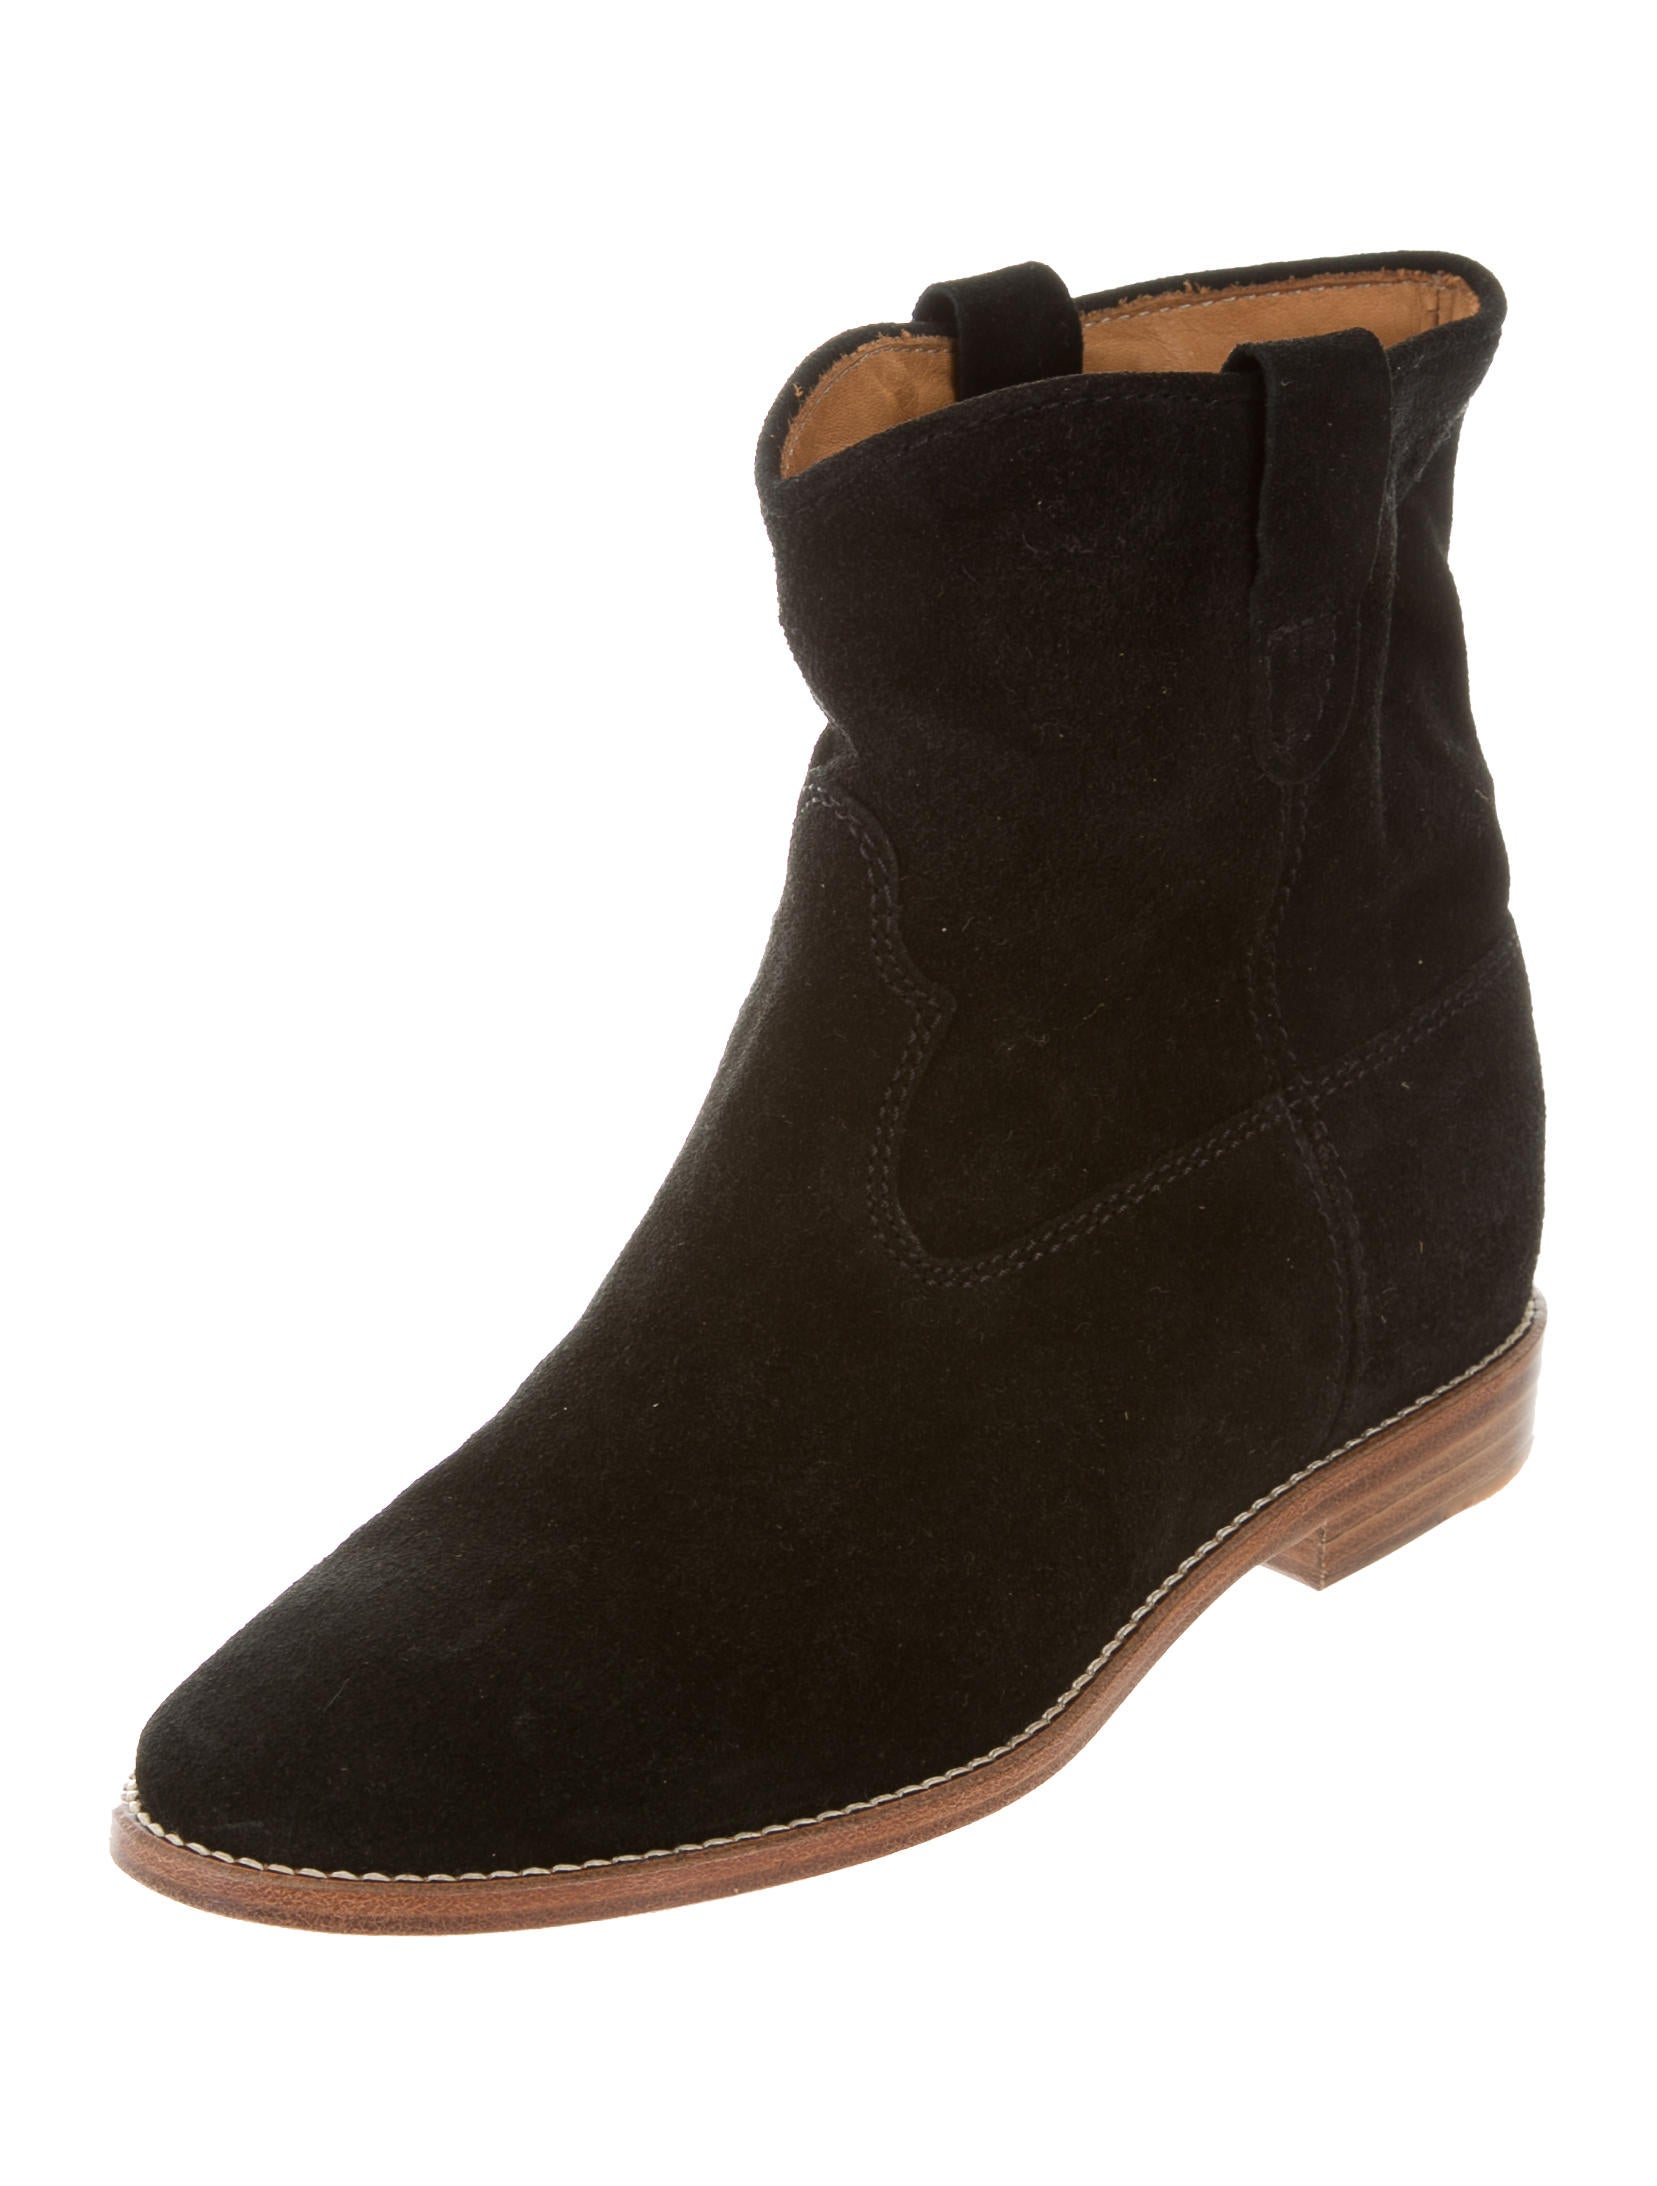 toile isabel marant crisi ankle boots shoes wet38893 the realreal. Black Bedroom Furniture Sets. Home Design Ideas